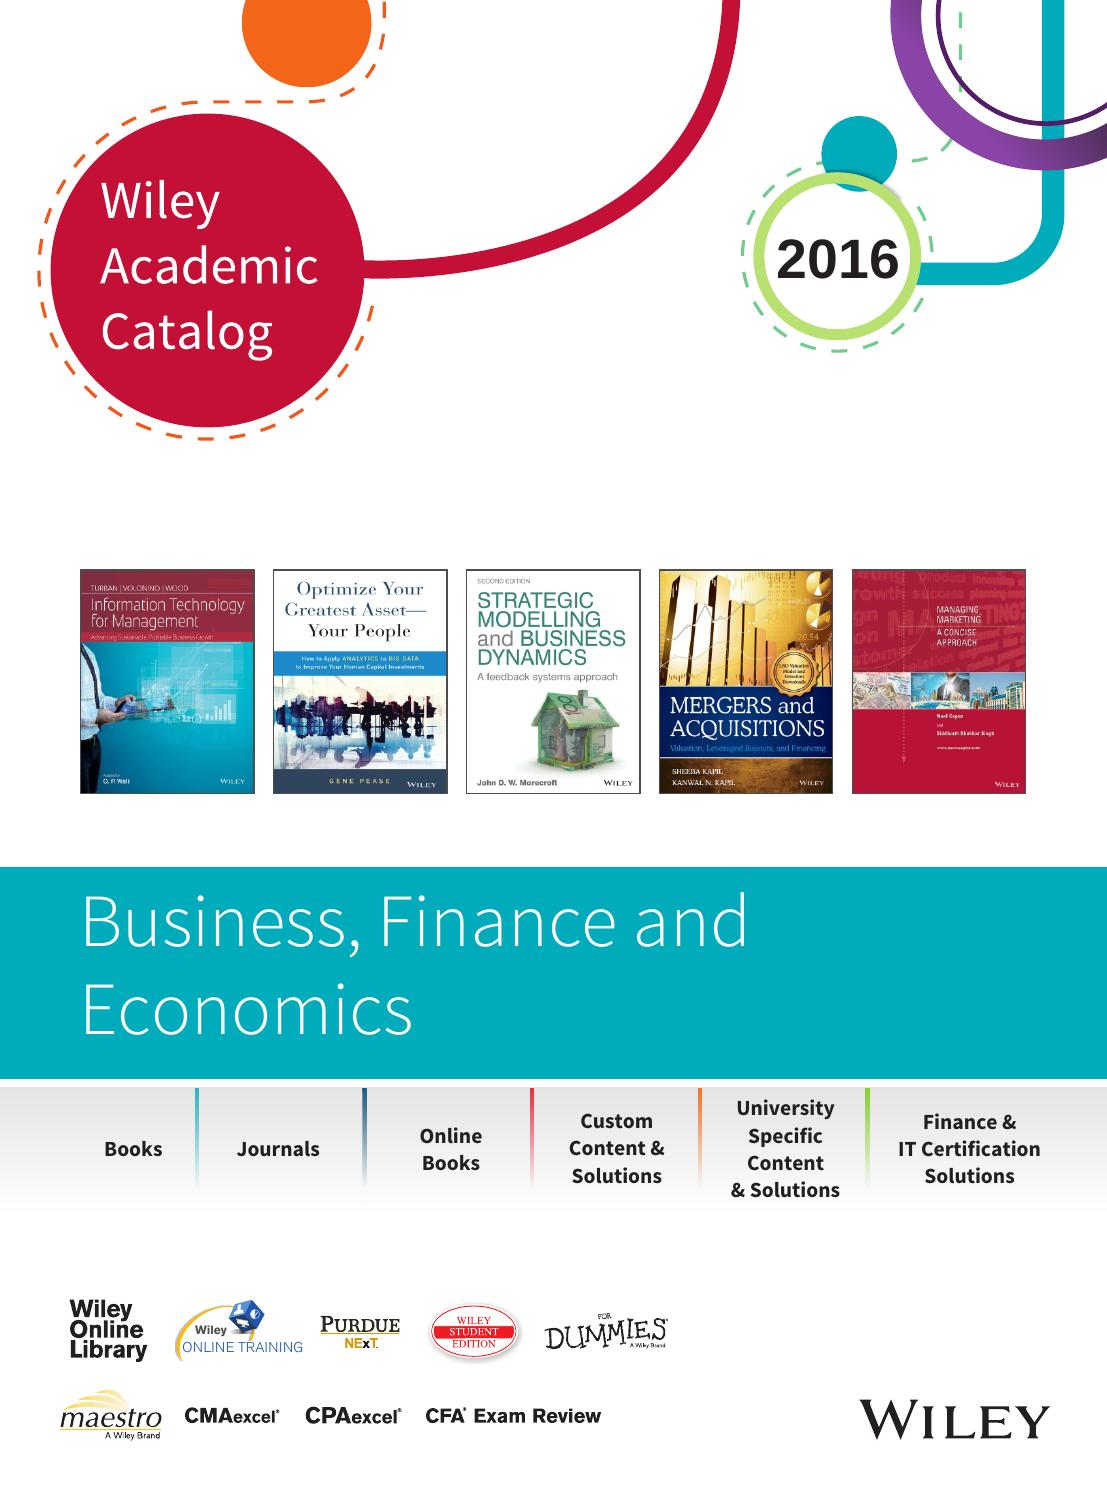 Wiley academic catalog business finance economics 2016 by wiley wiley academic catalog business finance economics 2016 by wiley india issuu fandeluxe Choice Image